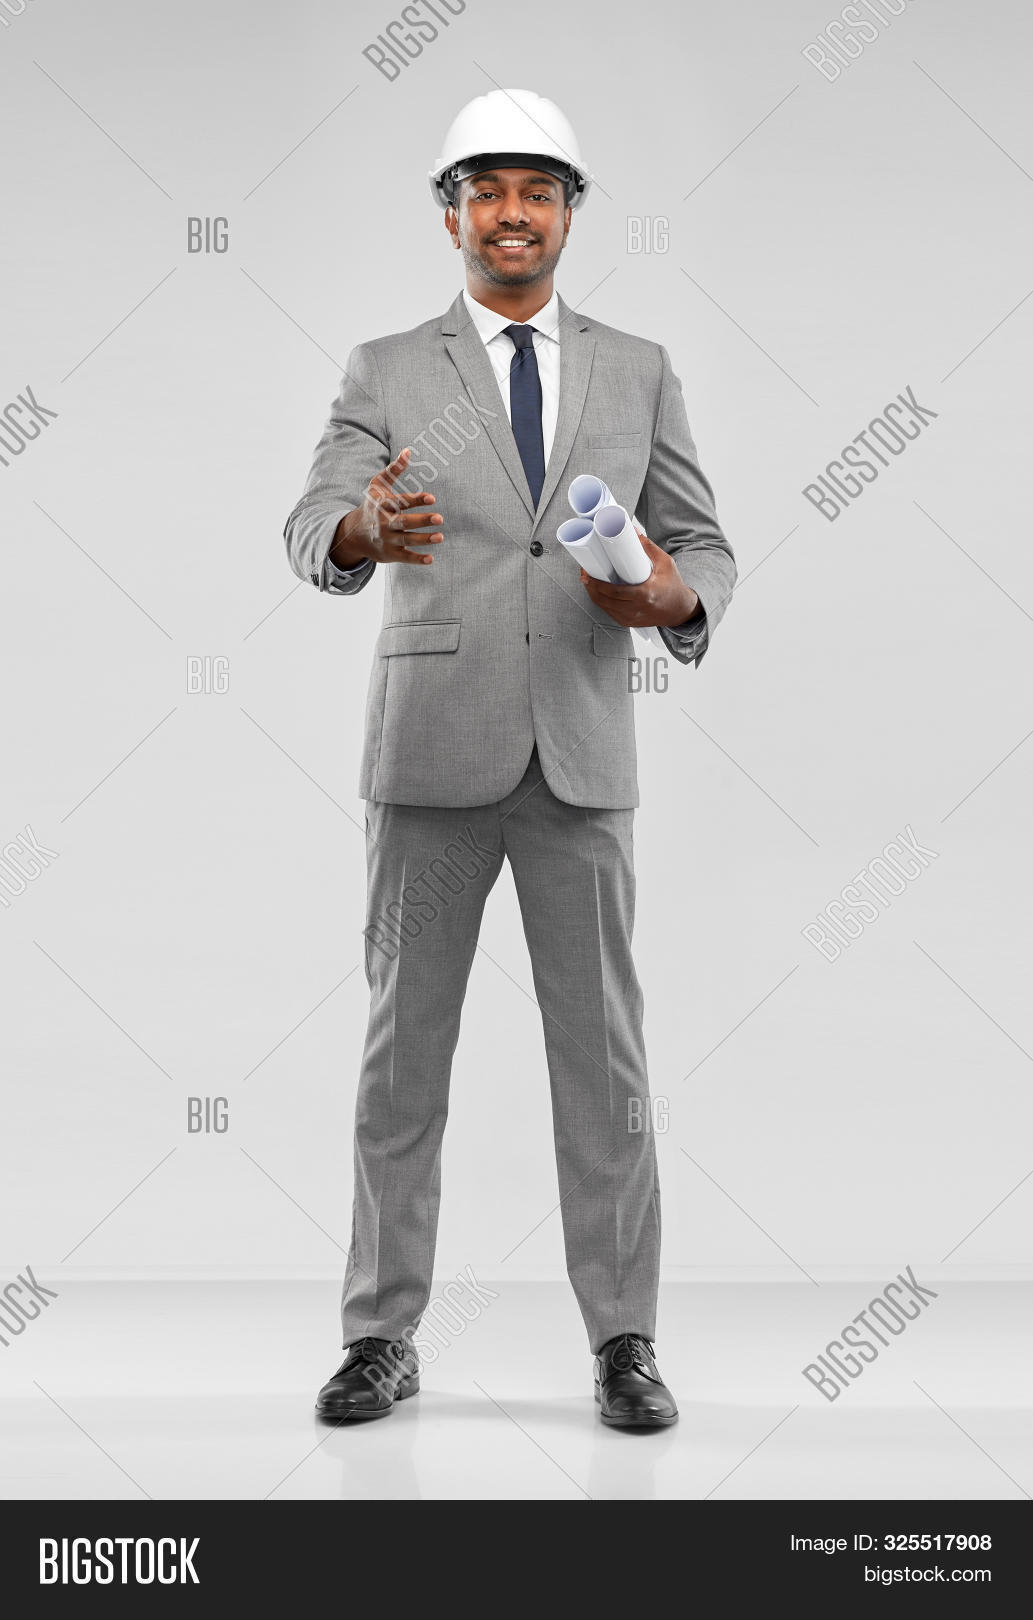 adult,agreement,architect,architecture,background,blueprint,building,business,businessman,cheerful,concept,construction,cooperation,corporate,deal,developer,entrepreneur,full-length,gesture,greeting,grey,hand,handshake,happy,hardhat,helmet,indian,male,man,office worker,partnership,people,person,professional,scroll,smiling,south asian,specialist,studio shot,suit,tie,white,white-collar,worker,young